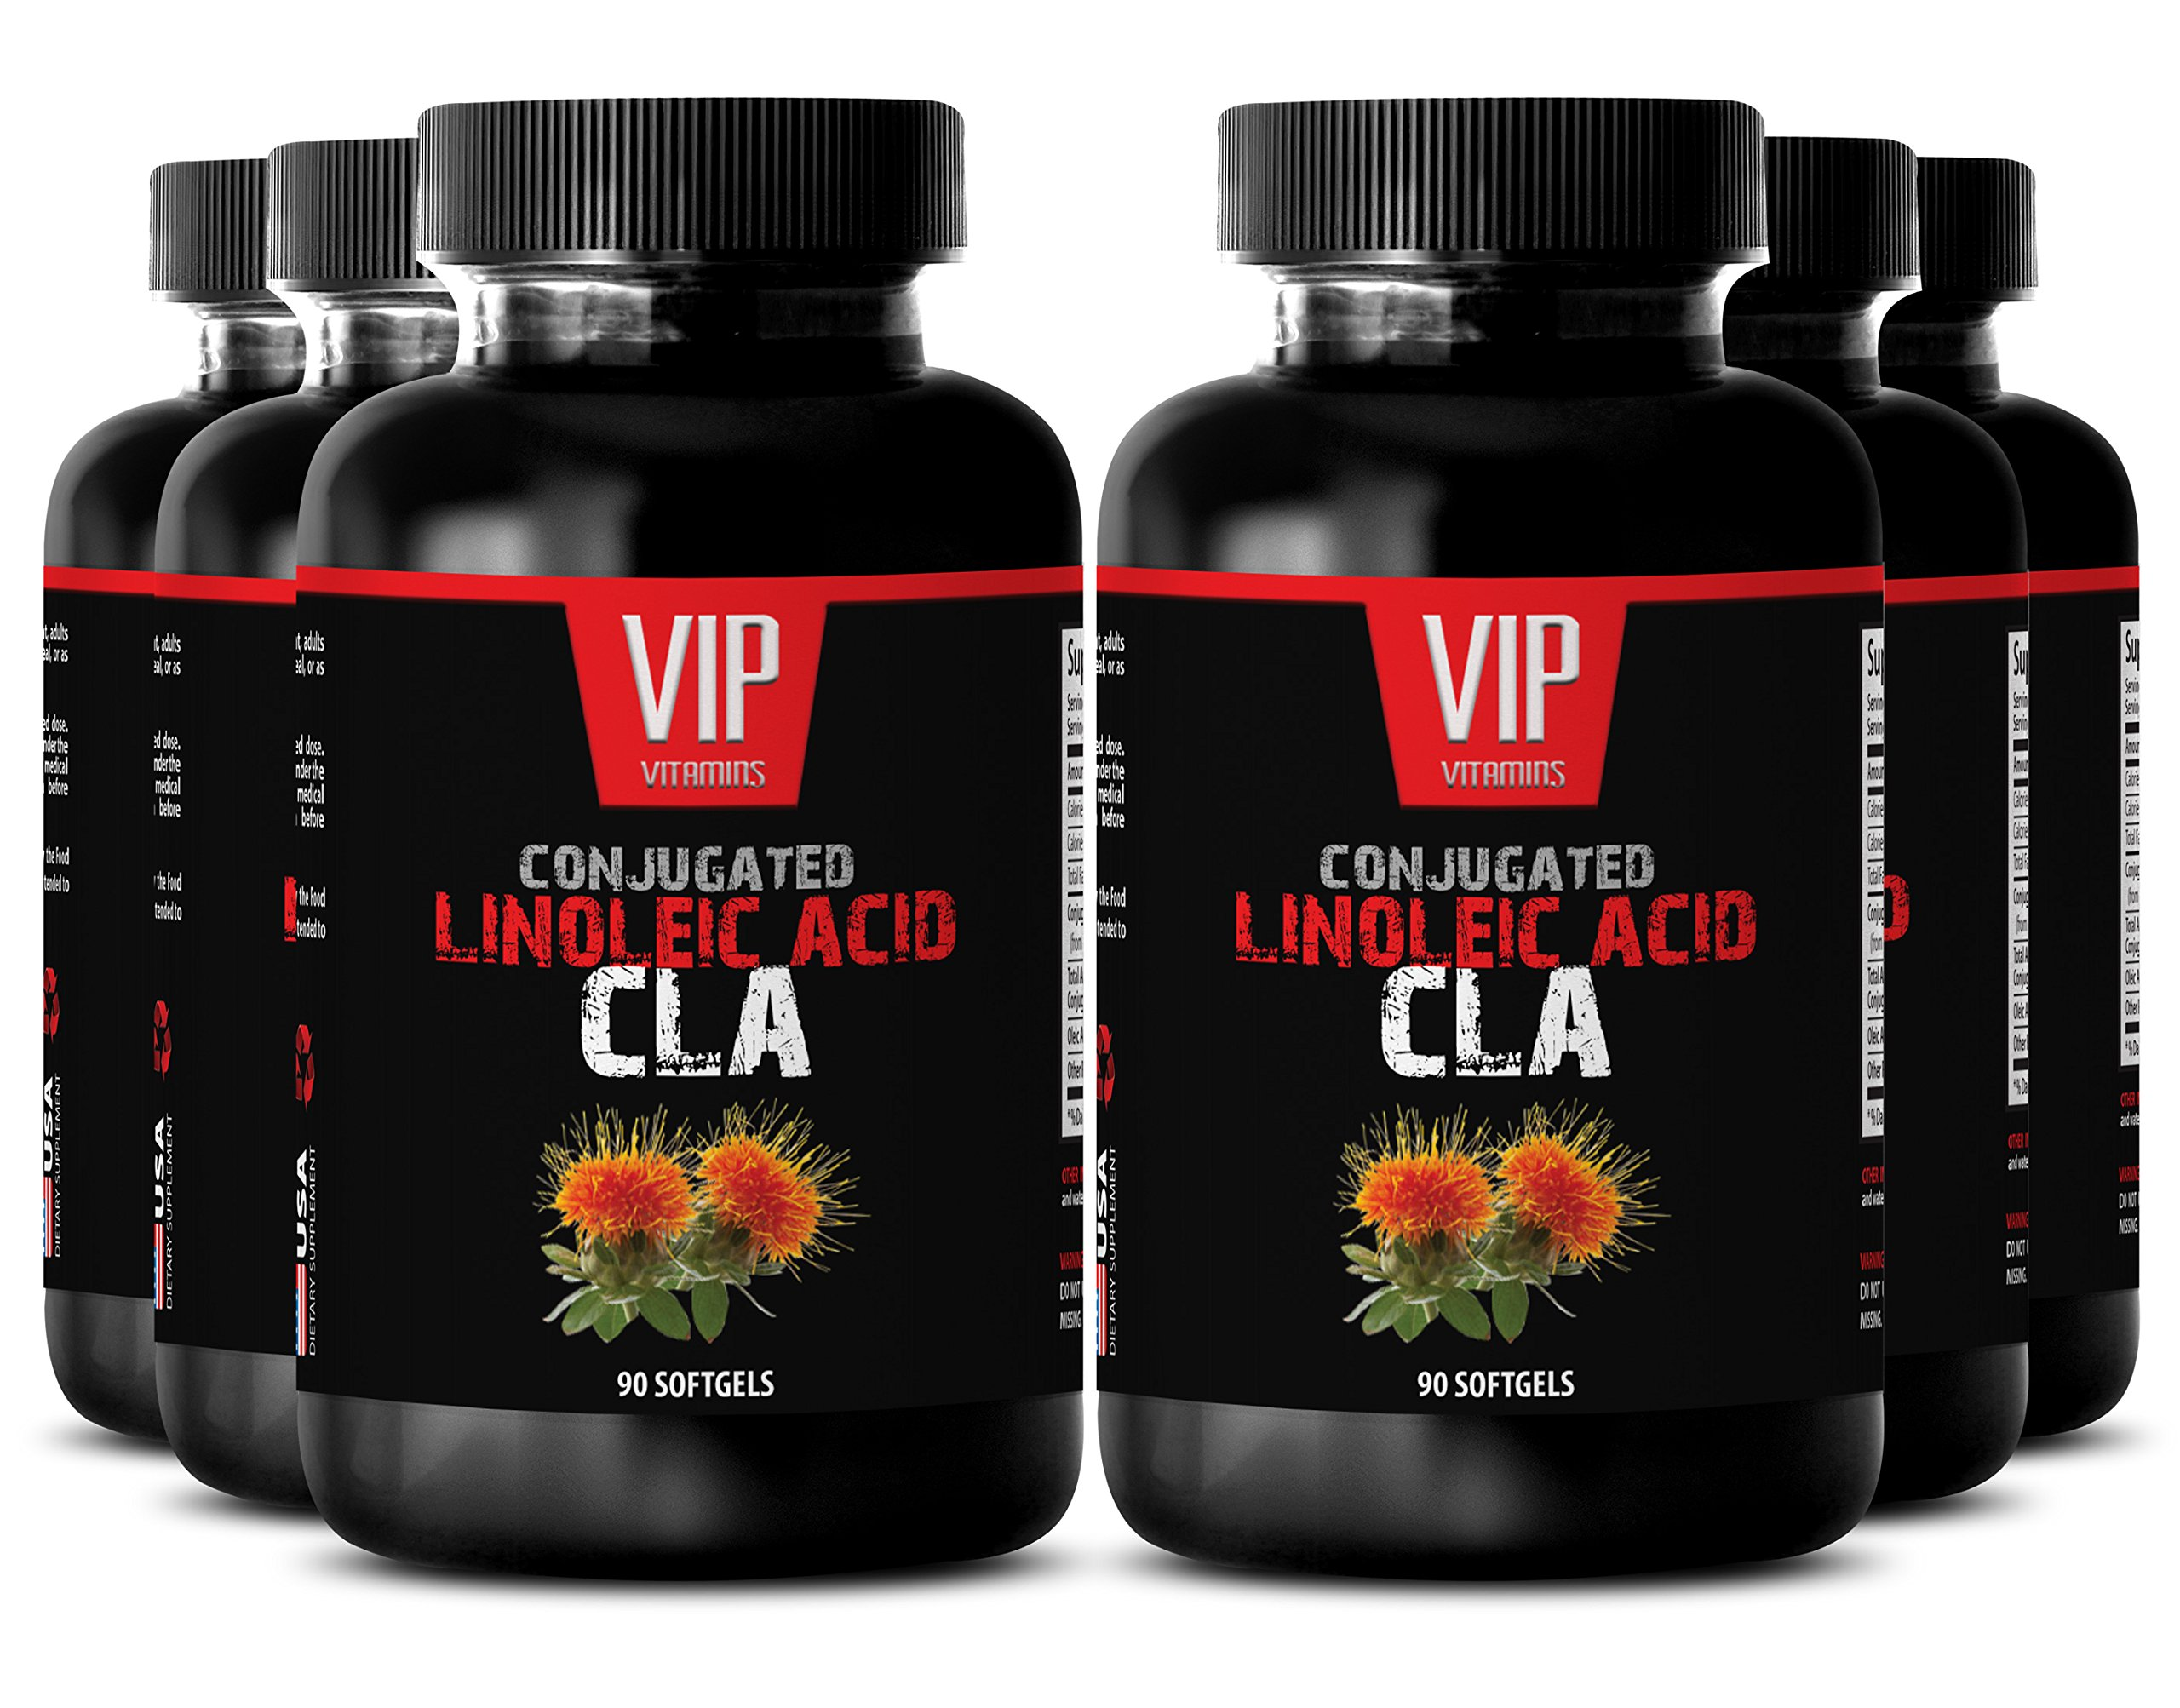 Conjugated linoleic acid - Conjugated Linoleic Acid CLA - Conjugated linoleic acid weight loss - 6 bottles 270 softgels by VIP VITAMINS (Image #1)